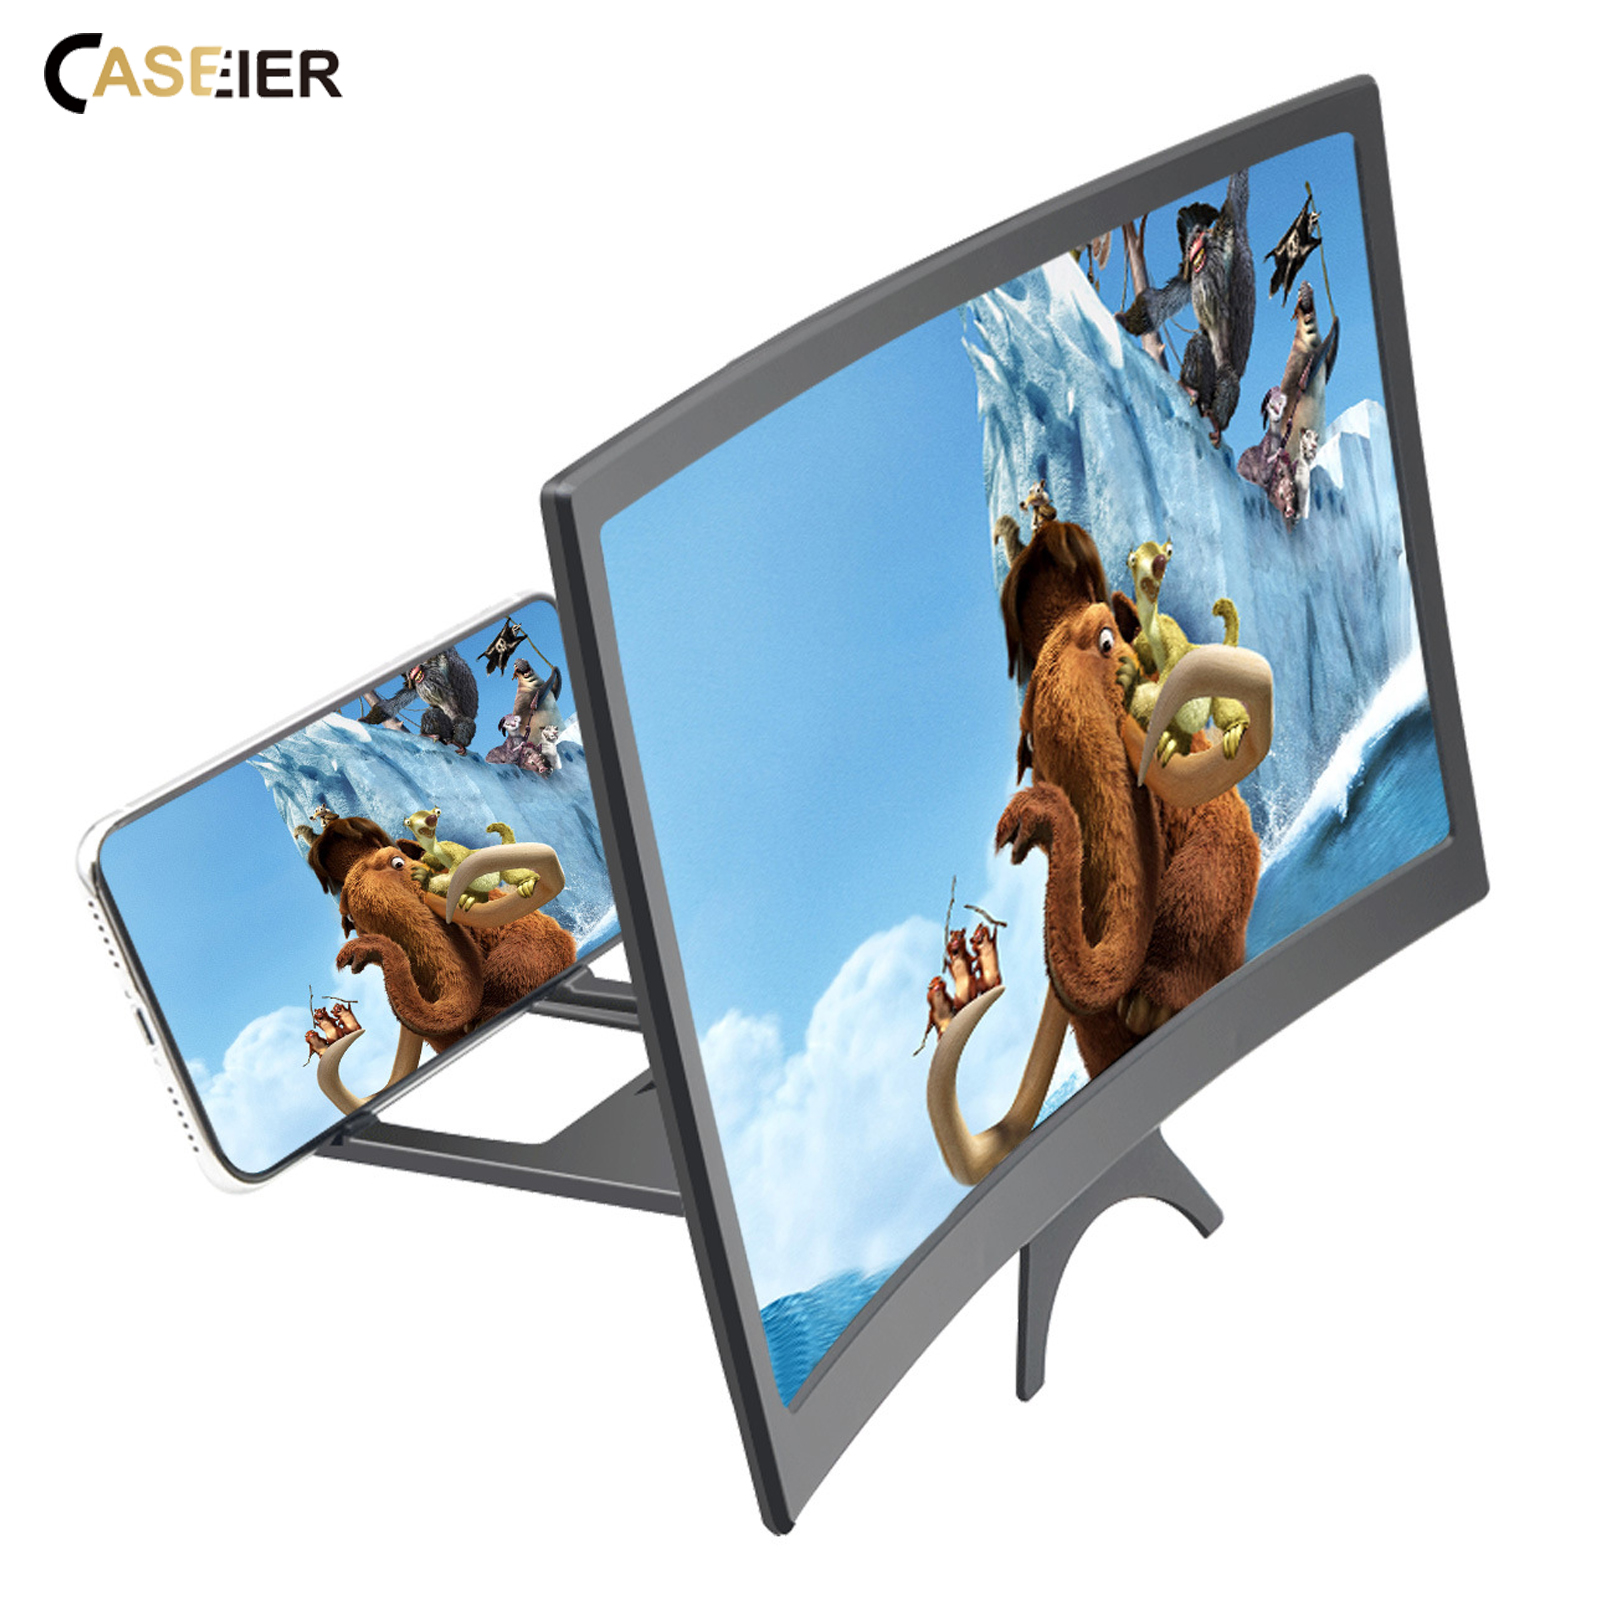 12 inch Curved Phone Screen Amplifier HD 3D Video Mobile Phone Magnifying Glass Stand Bracket Foldable Phone Holder Projector 5